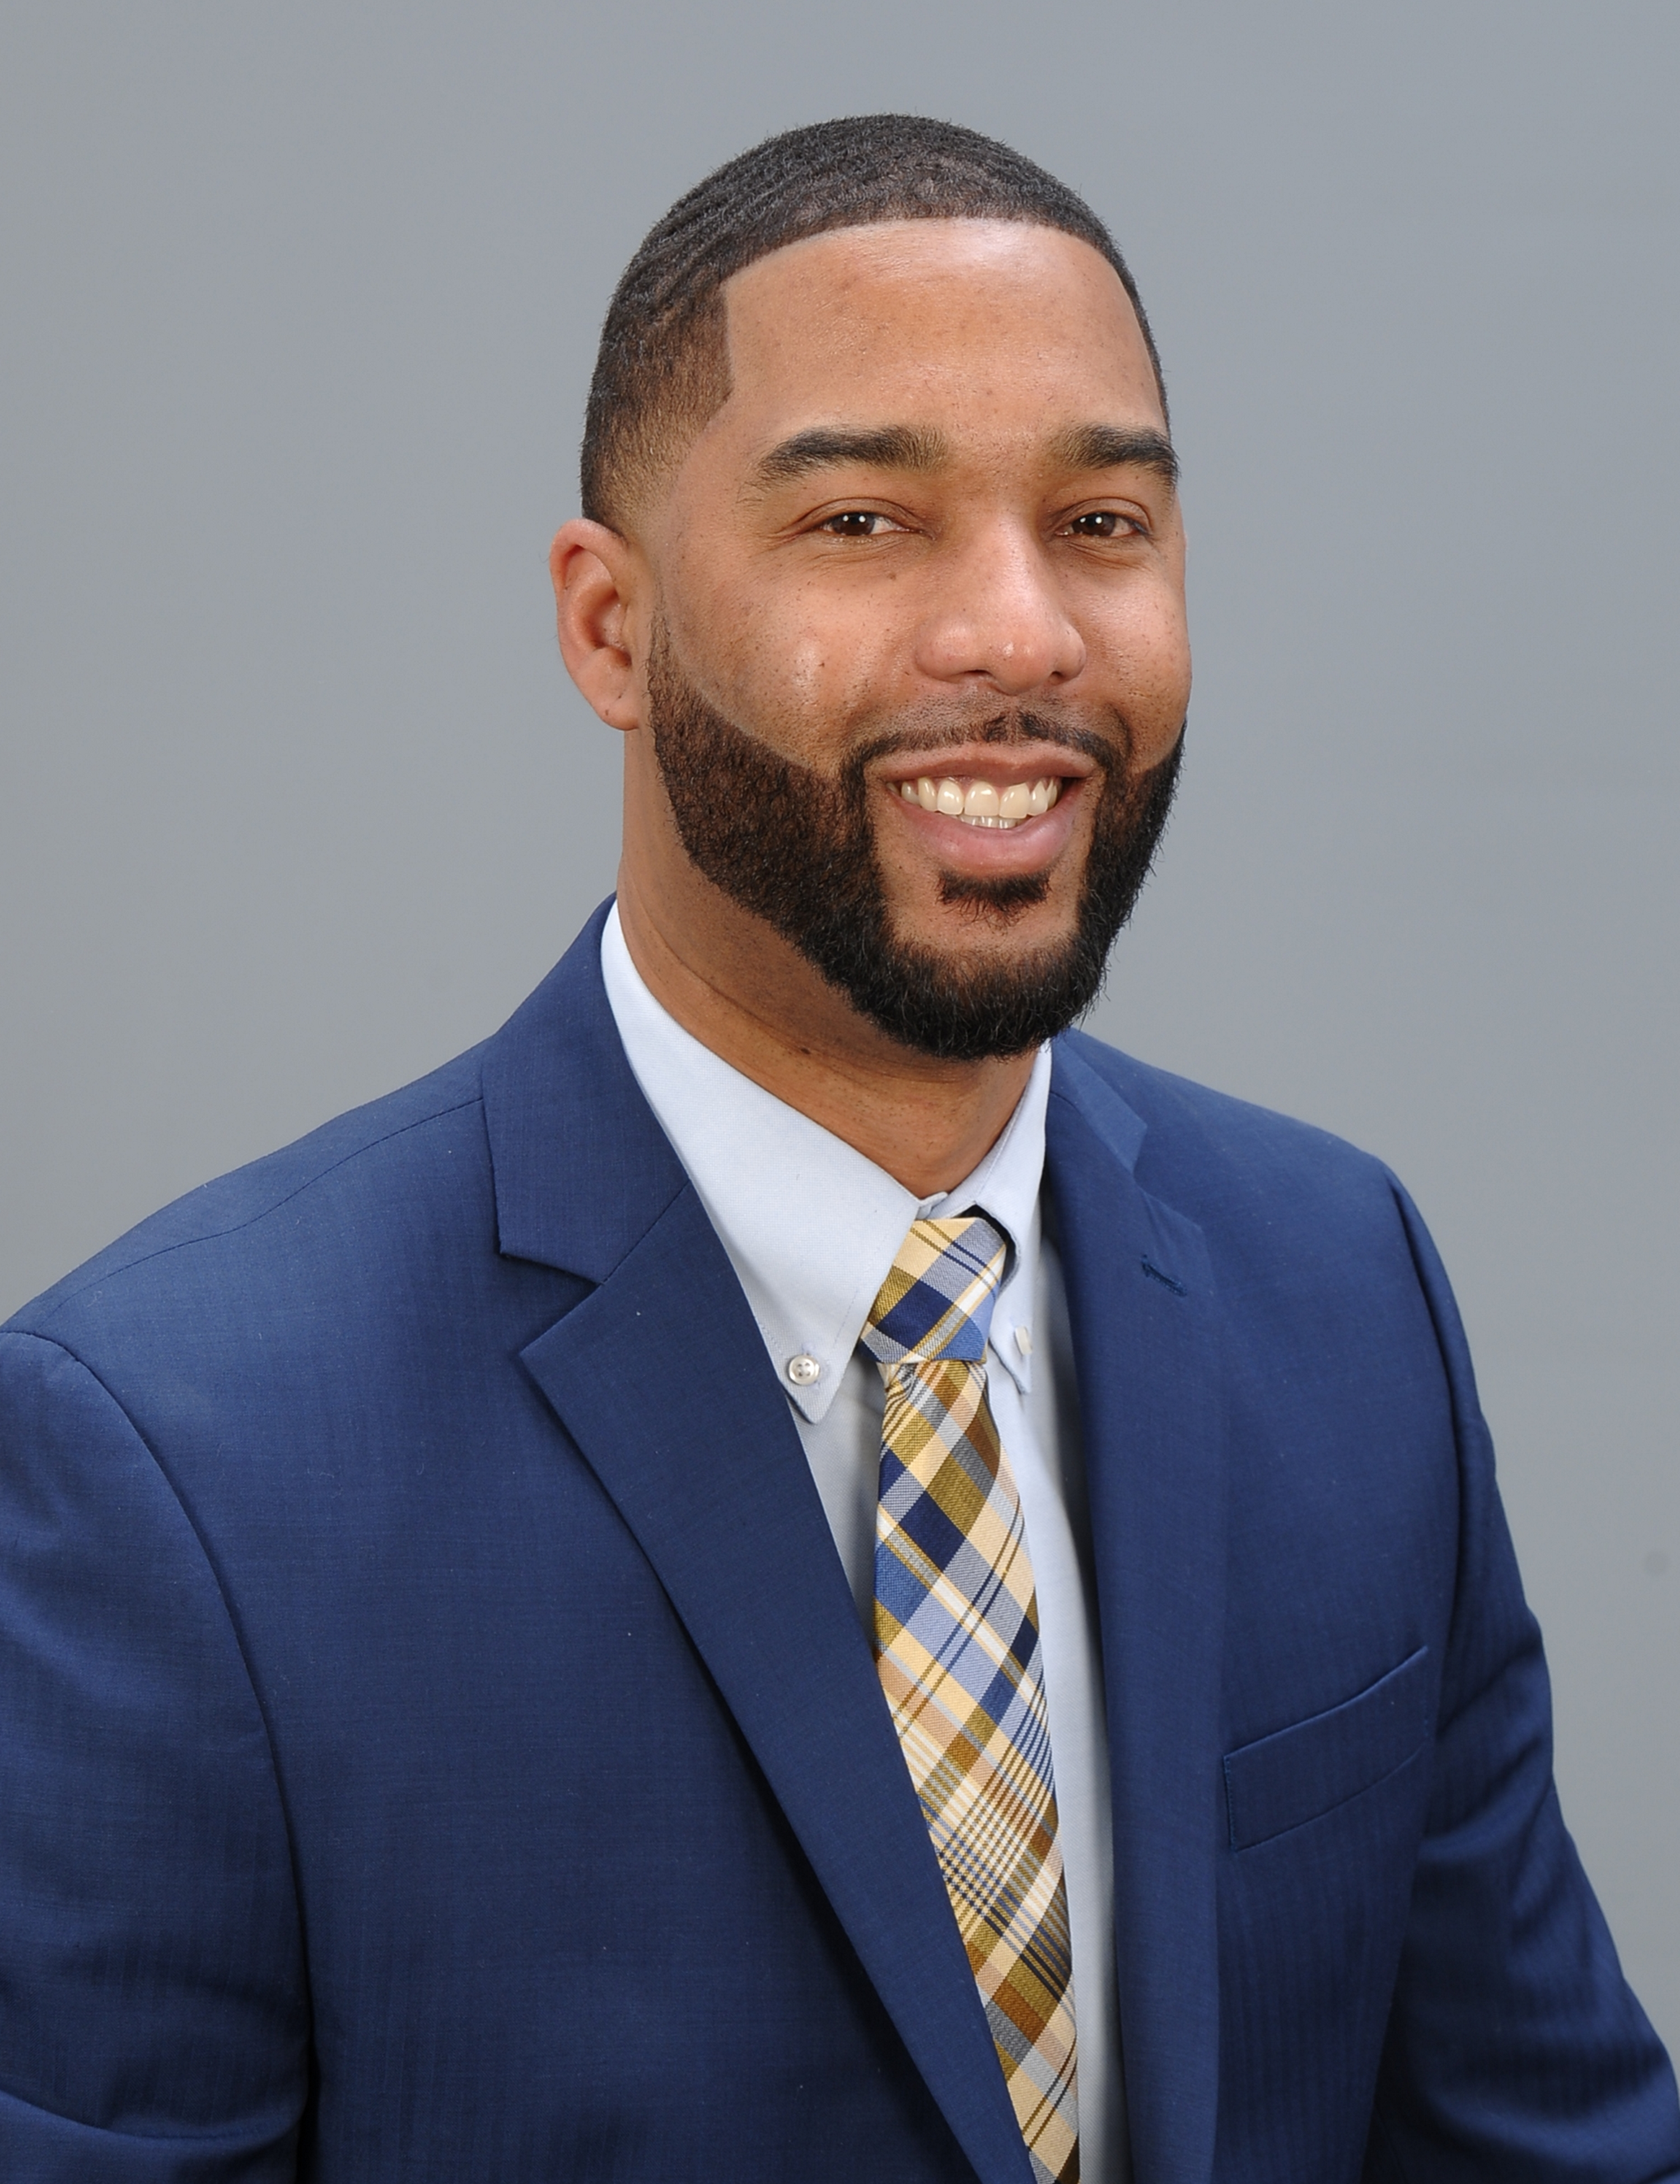 Account Manager State Farm Agent Team Member Property And Casualty Insurance Focus Andre